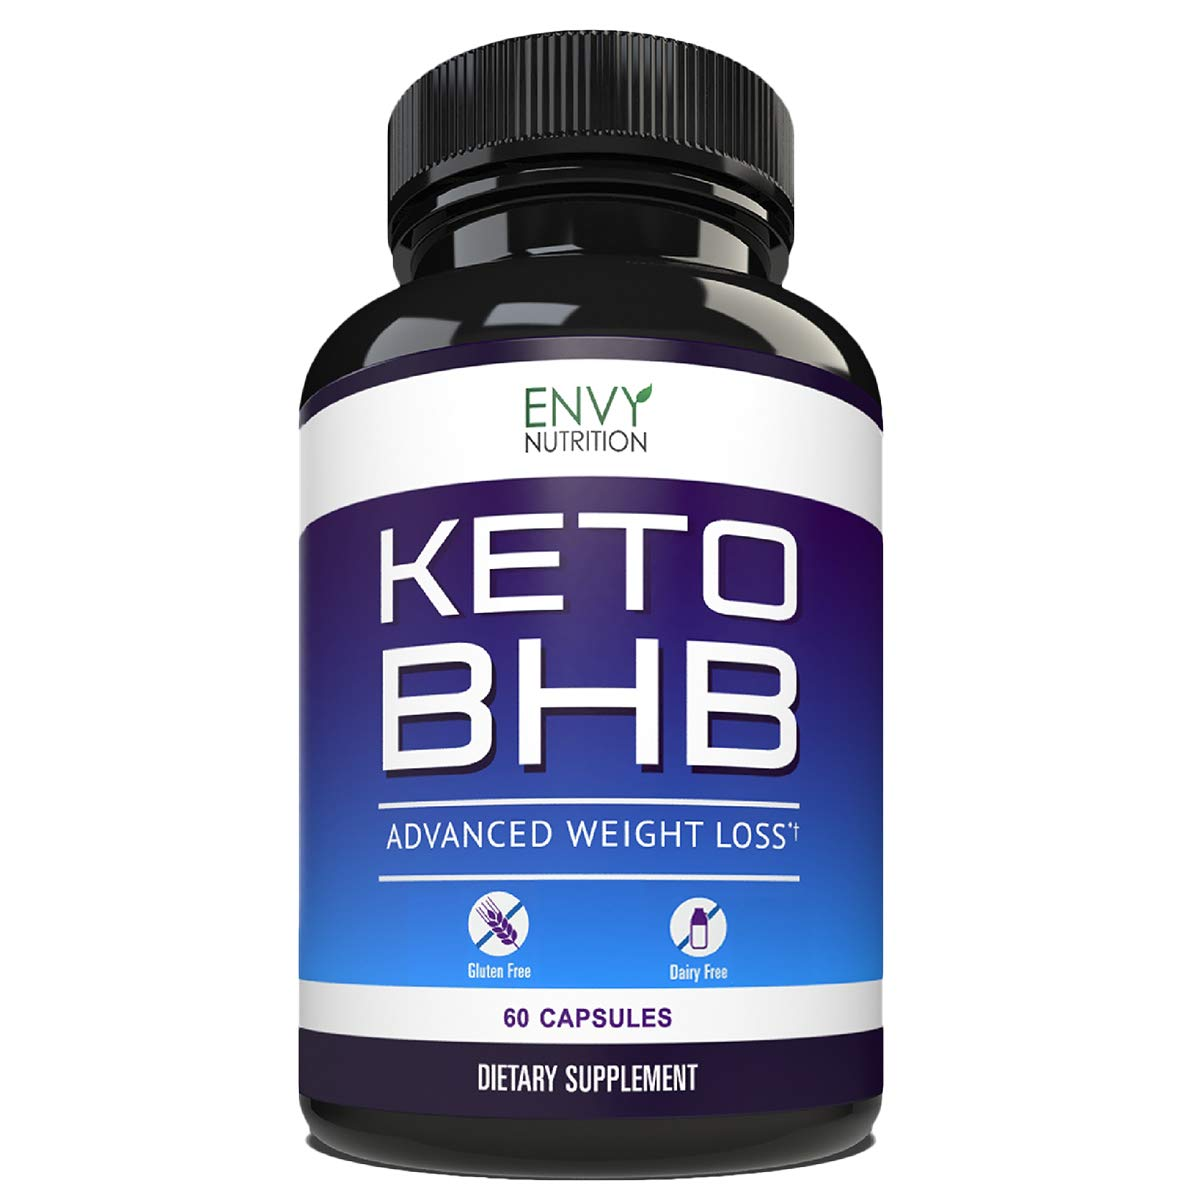 Best Keto Diet Pills – Advanced Weight Loss - BHB Salts Support Fat Burning, Ketosis, Improved Energy and Enhanced Focus - 60 Count